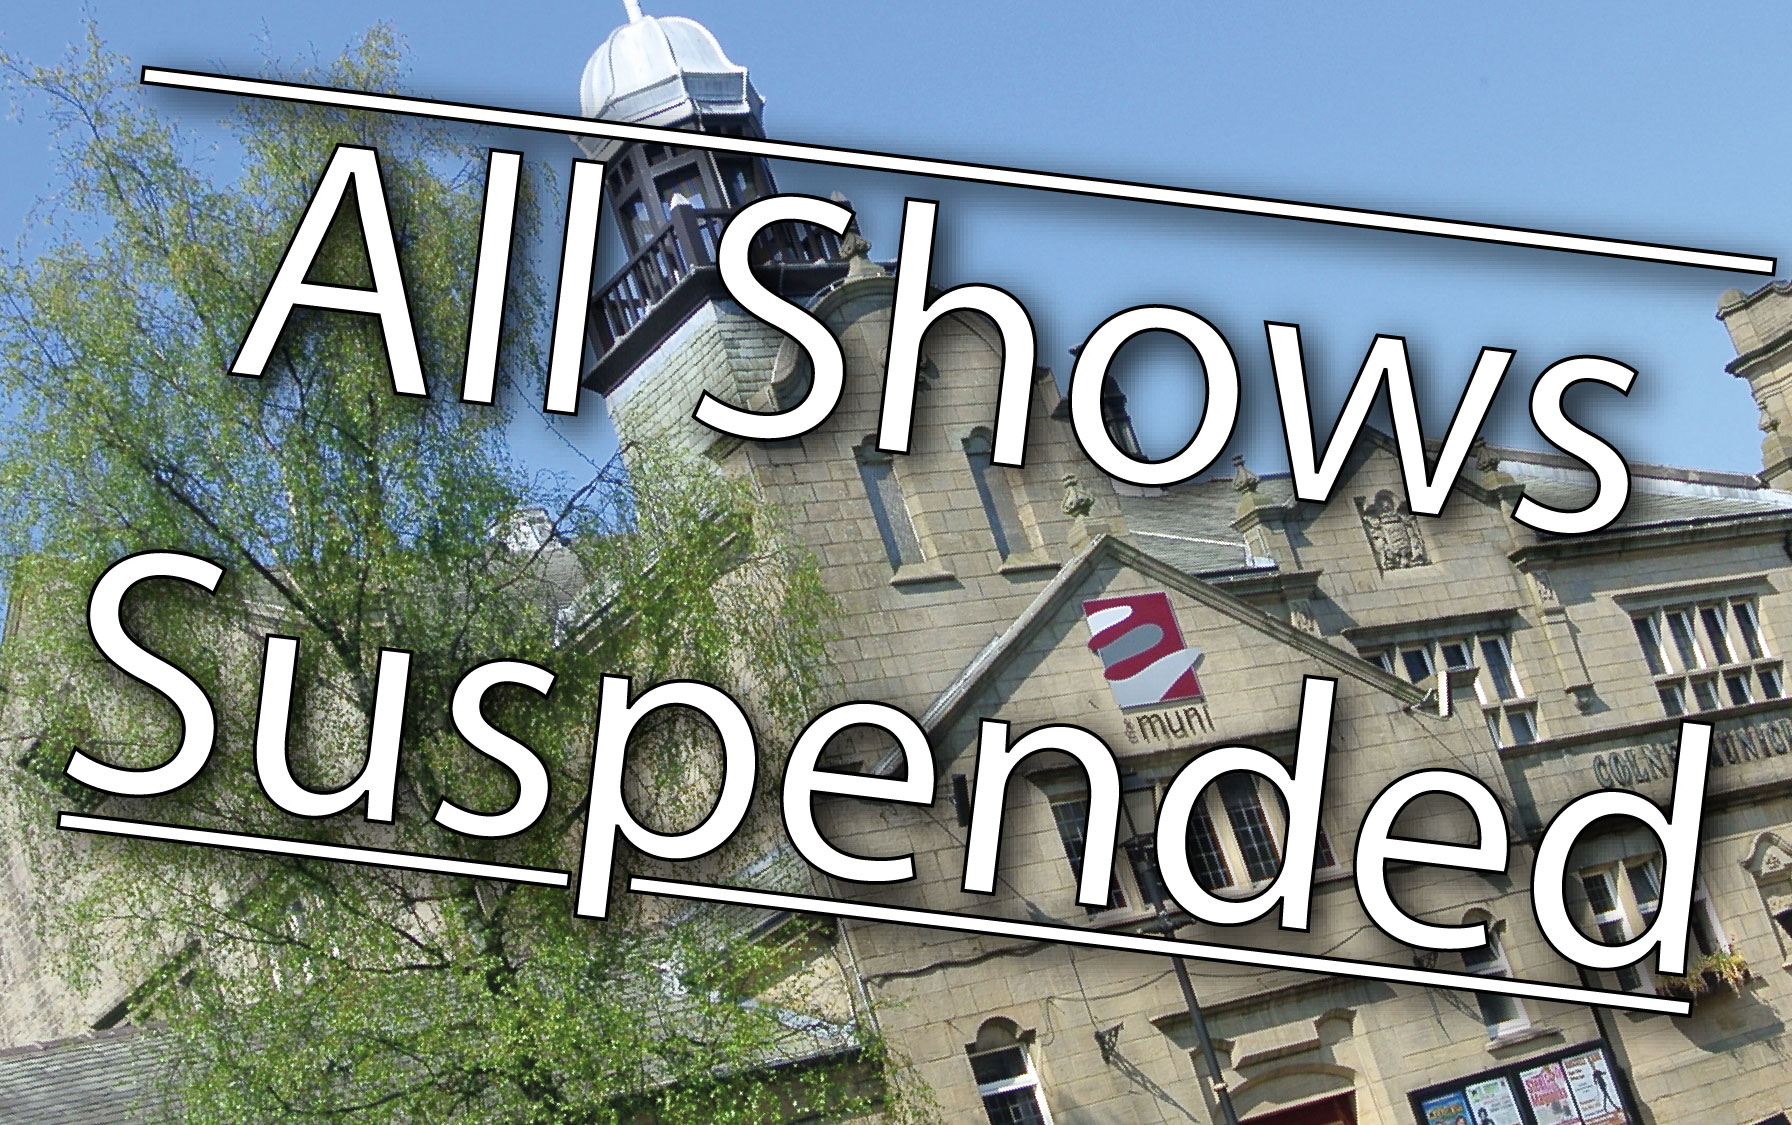 All theatre shows are temporarily suspended